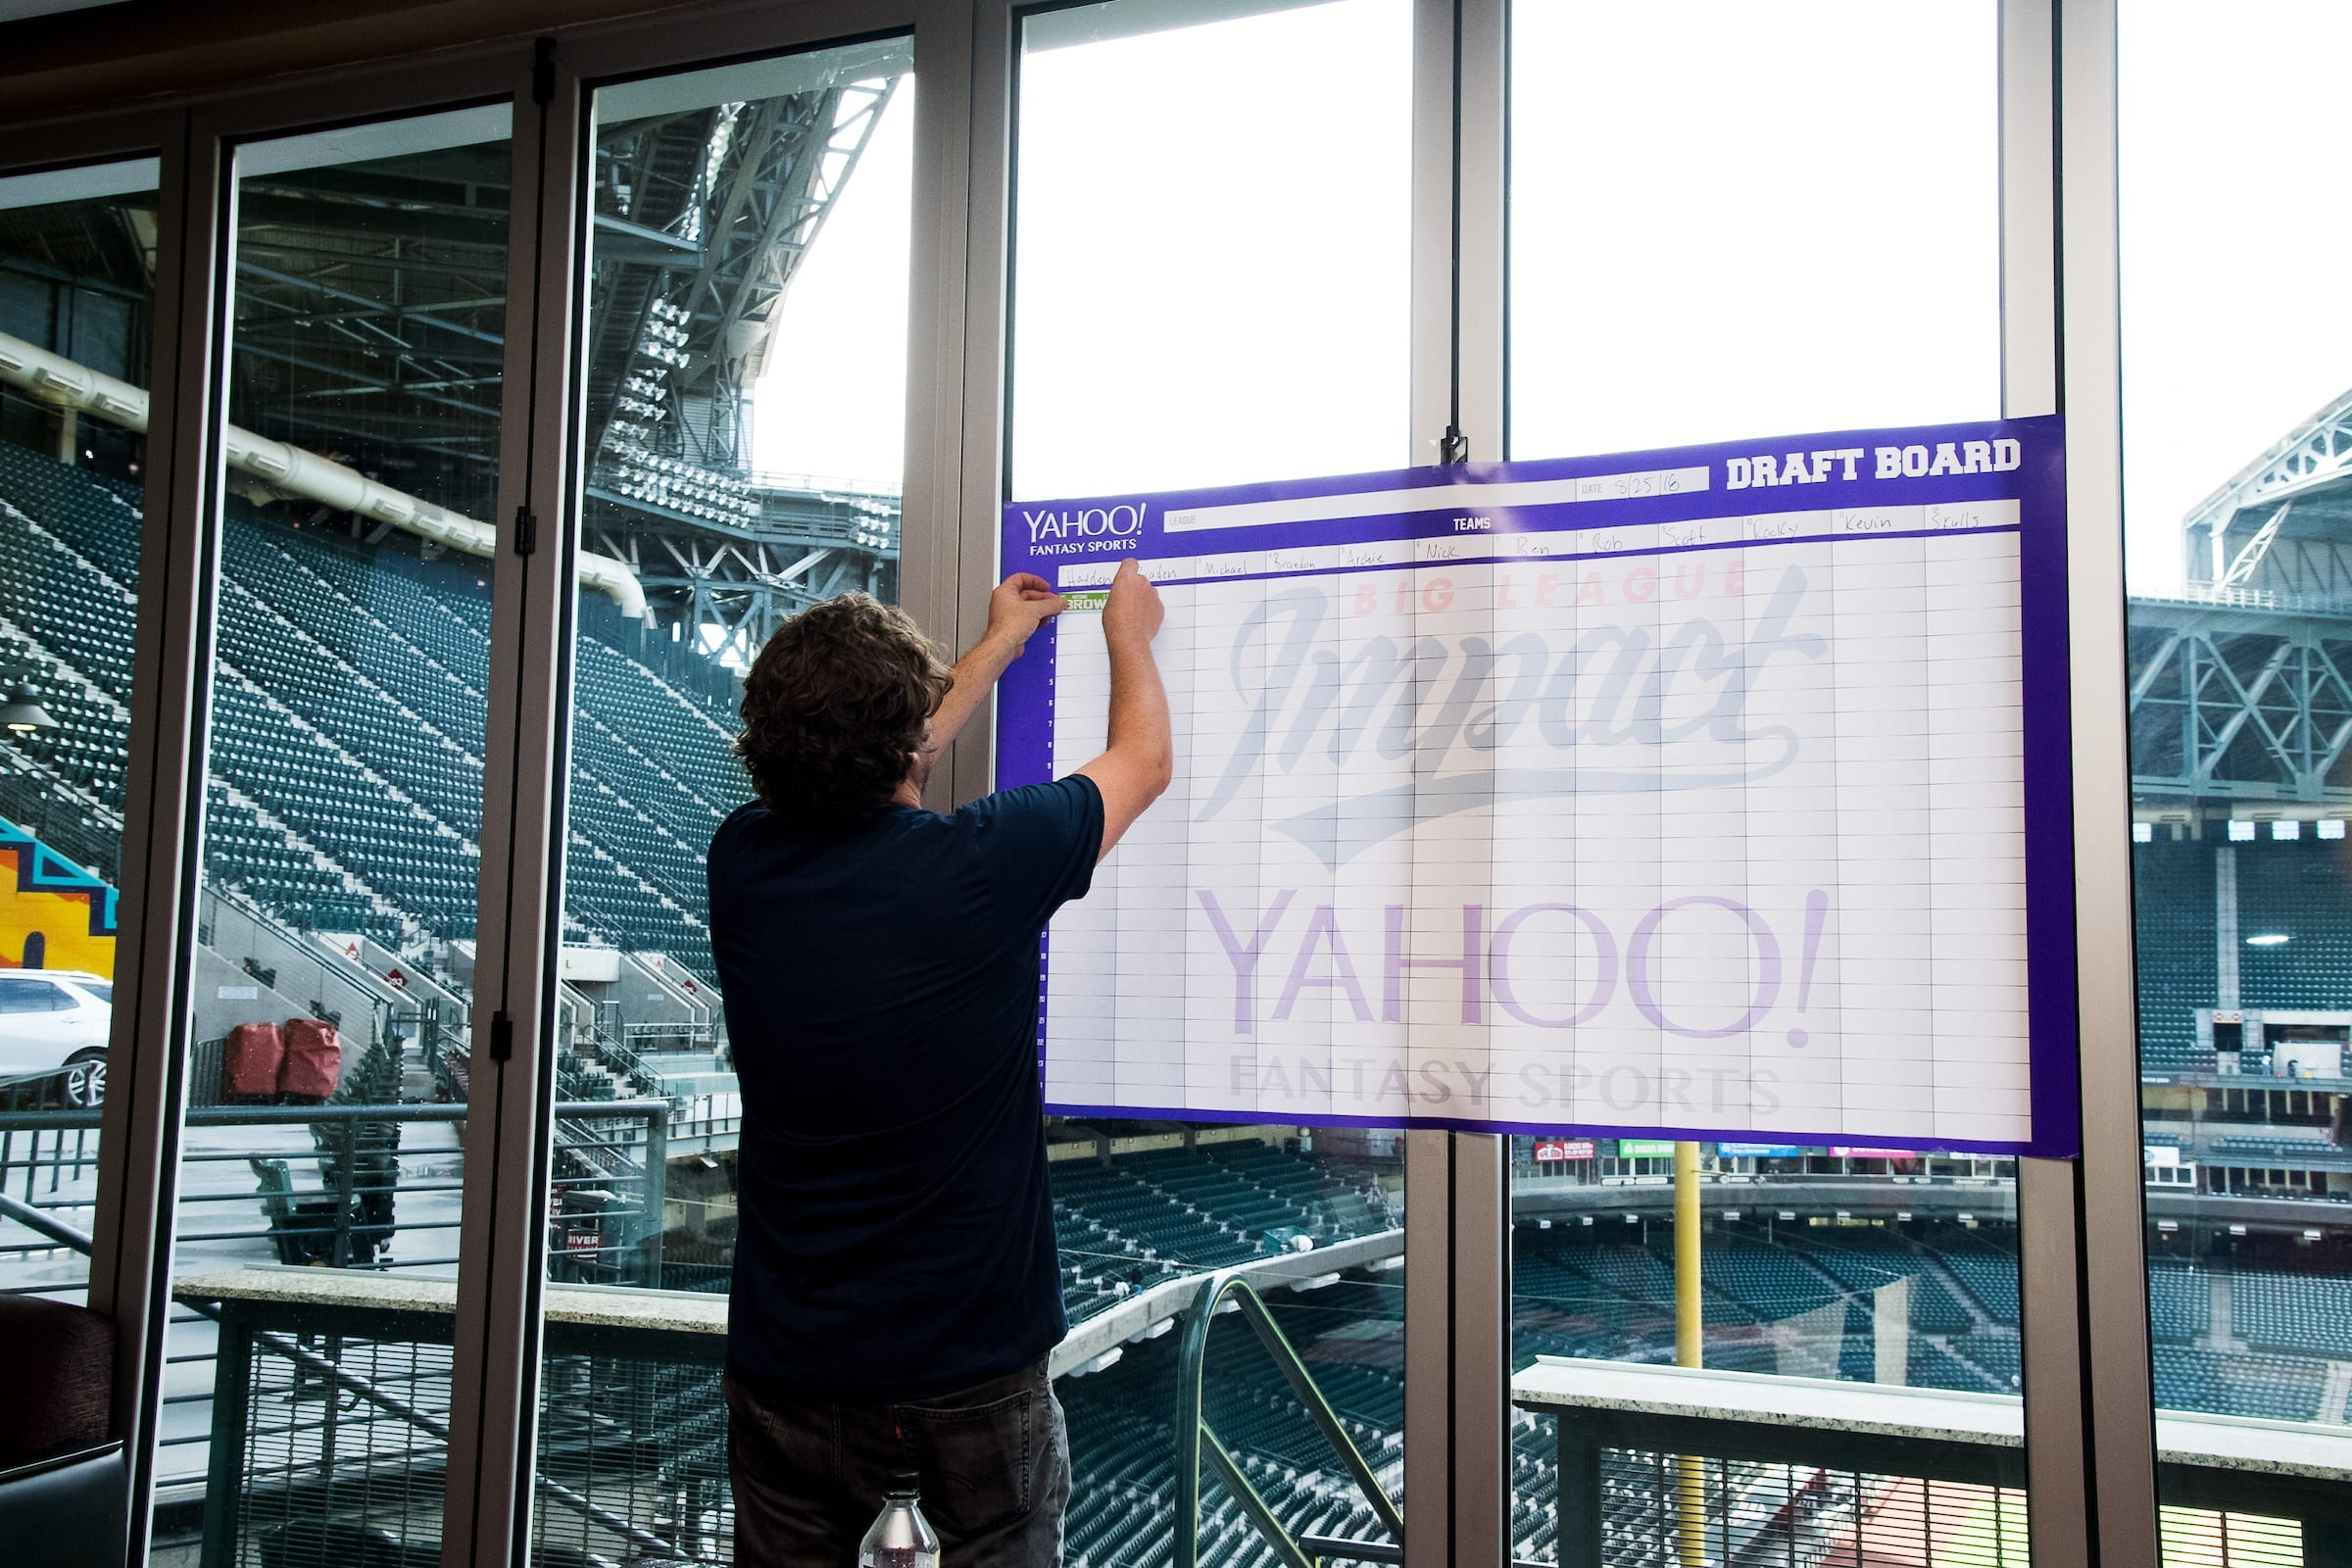 Big League Impact is now the charity partner of Yahoo! Sports